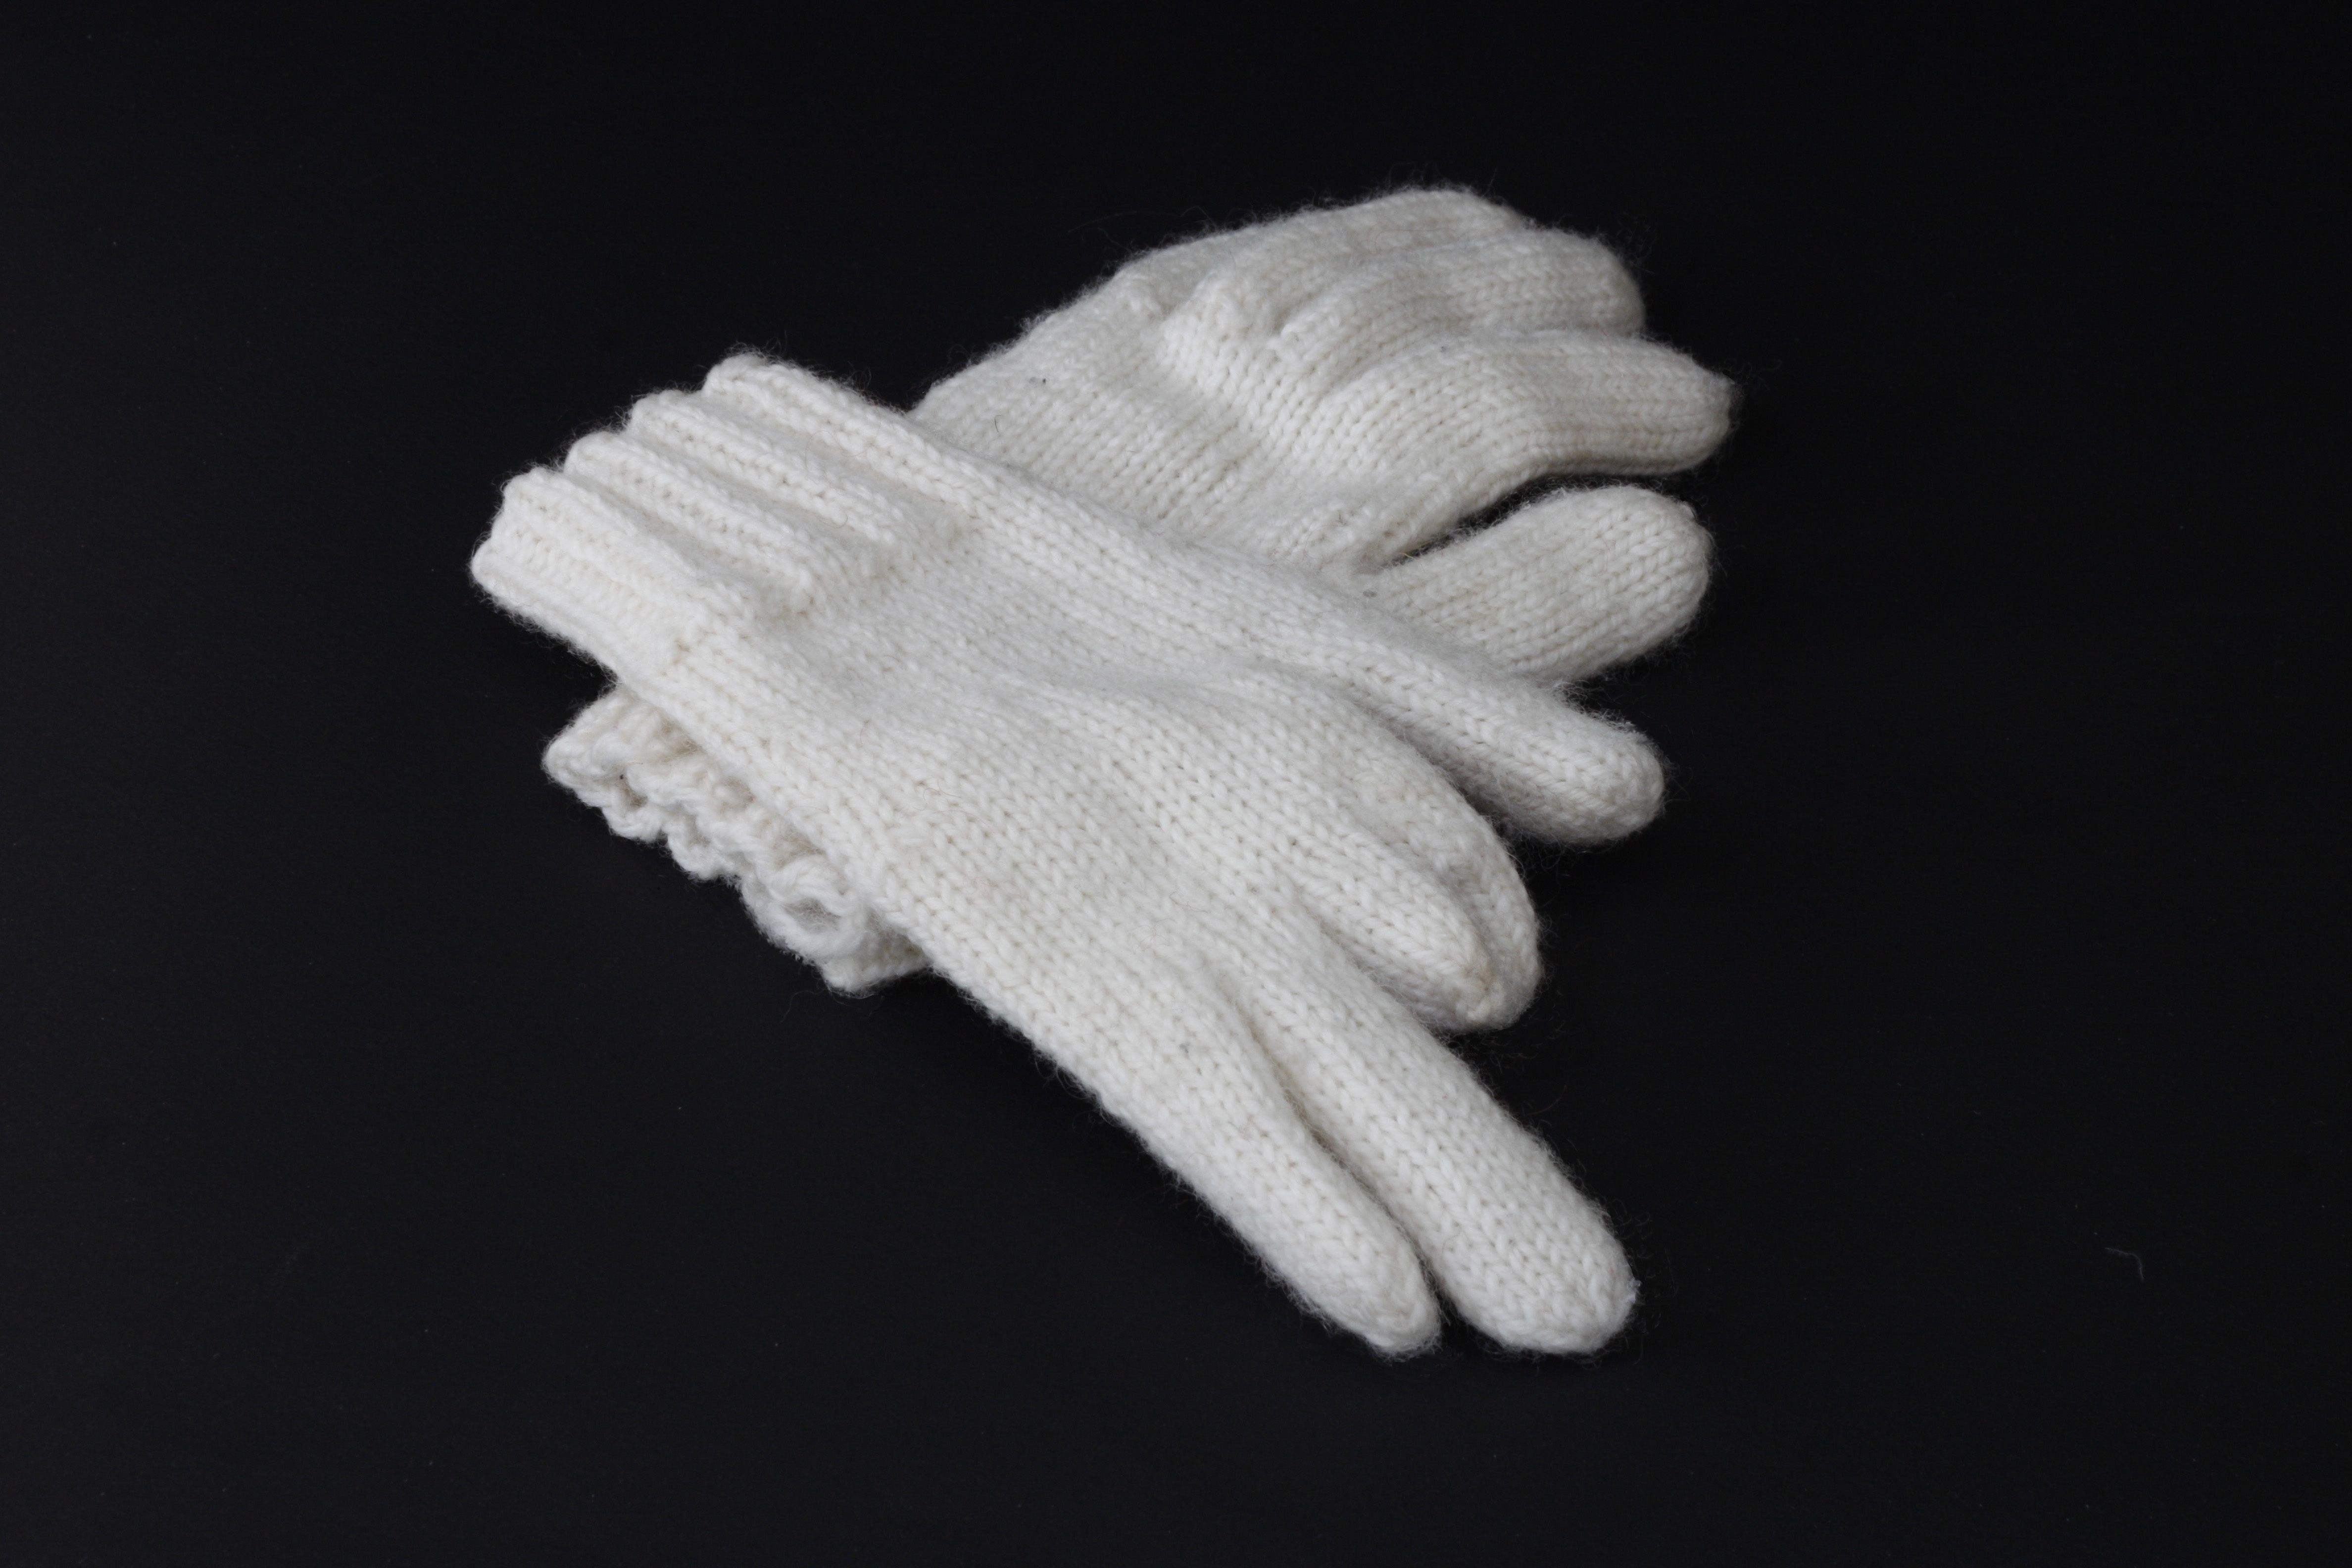 Finished gloves missing the upper part of two fingers on my right hand.